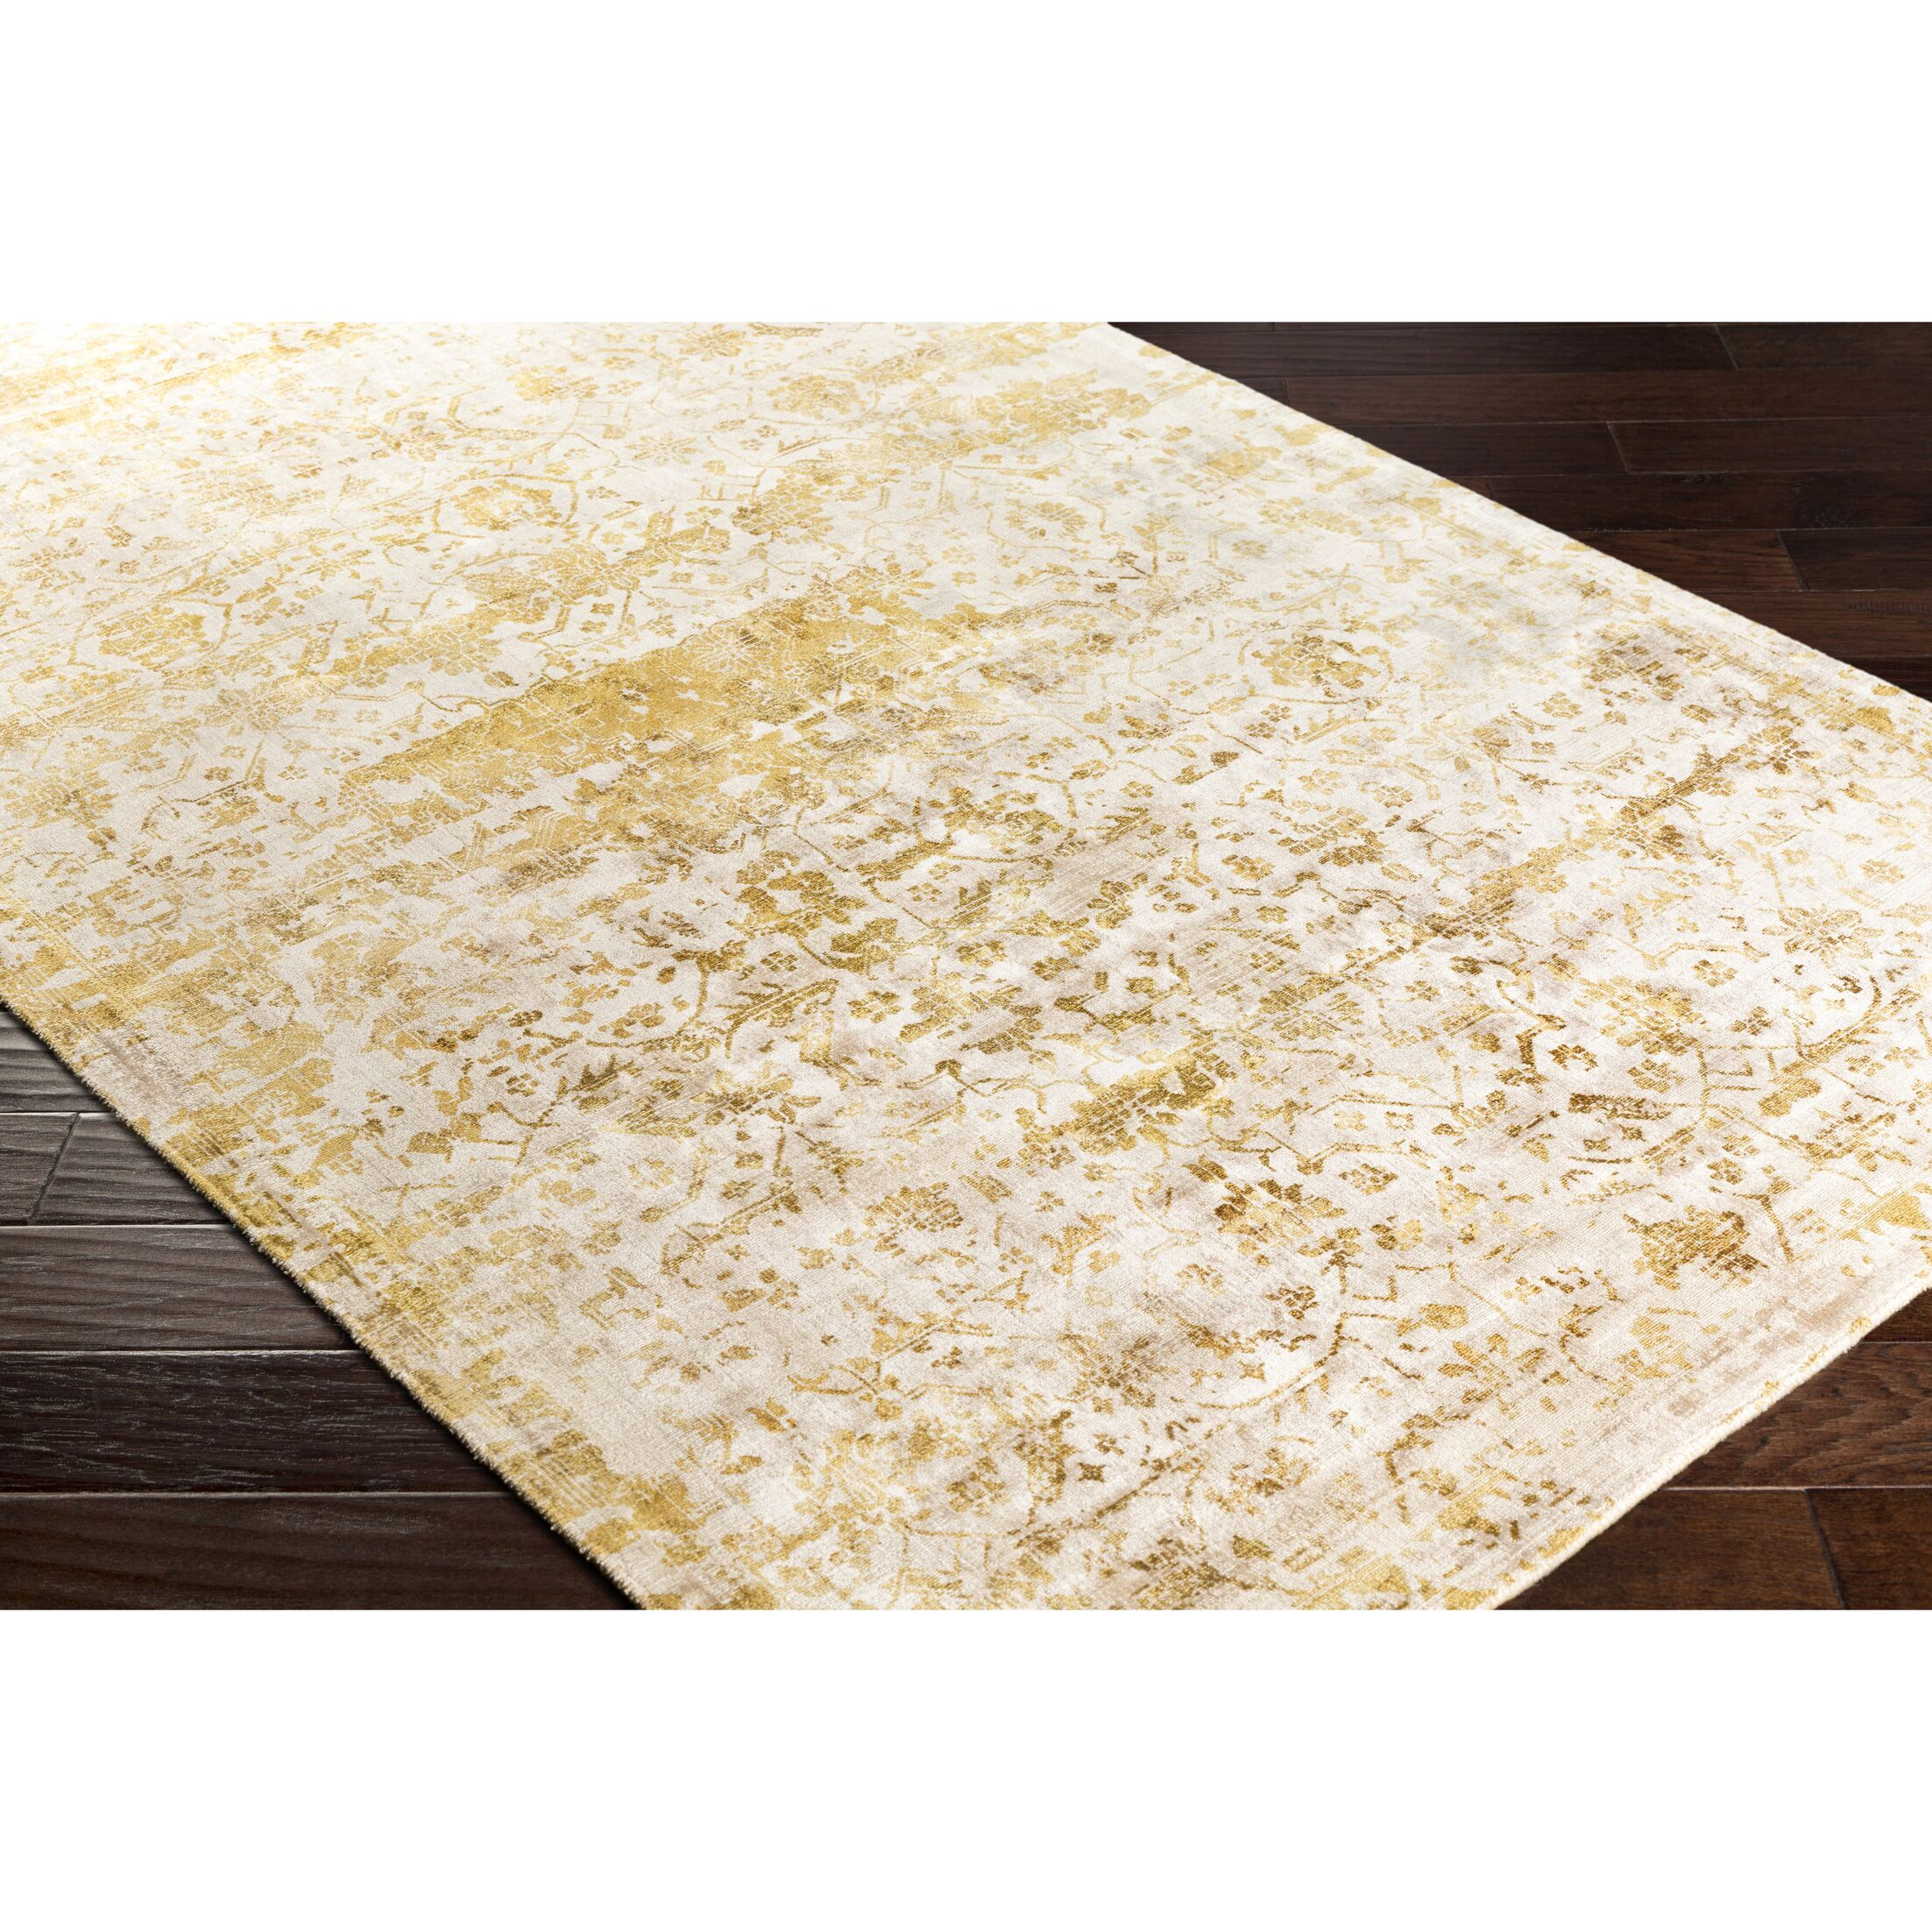 Dollie Hand-Loomed Yellow/Neutral Area Rug Rug Size: Rectangle 5' x 7'6